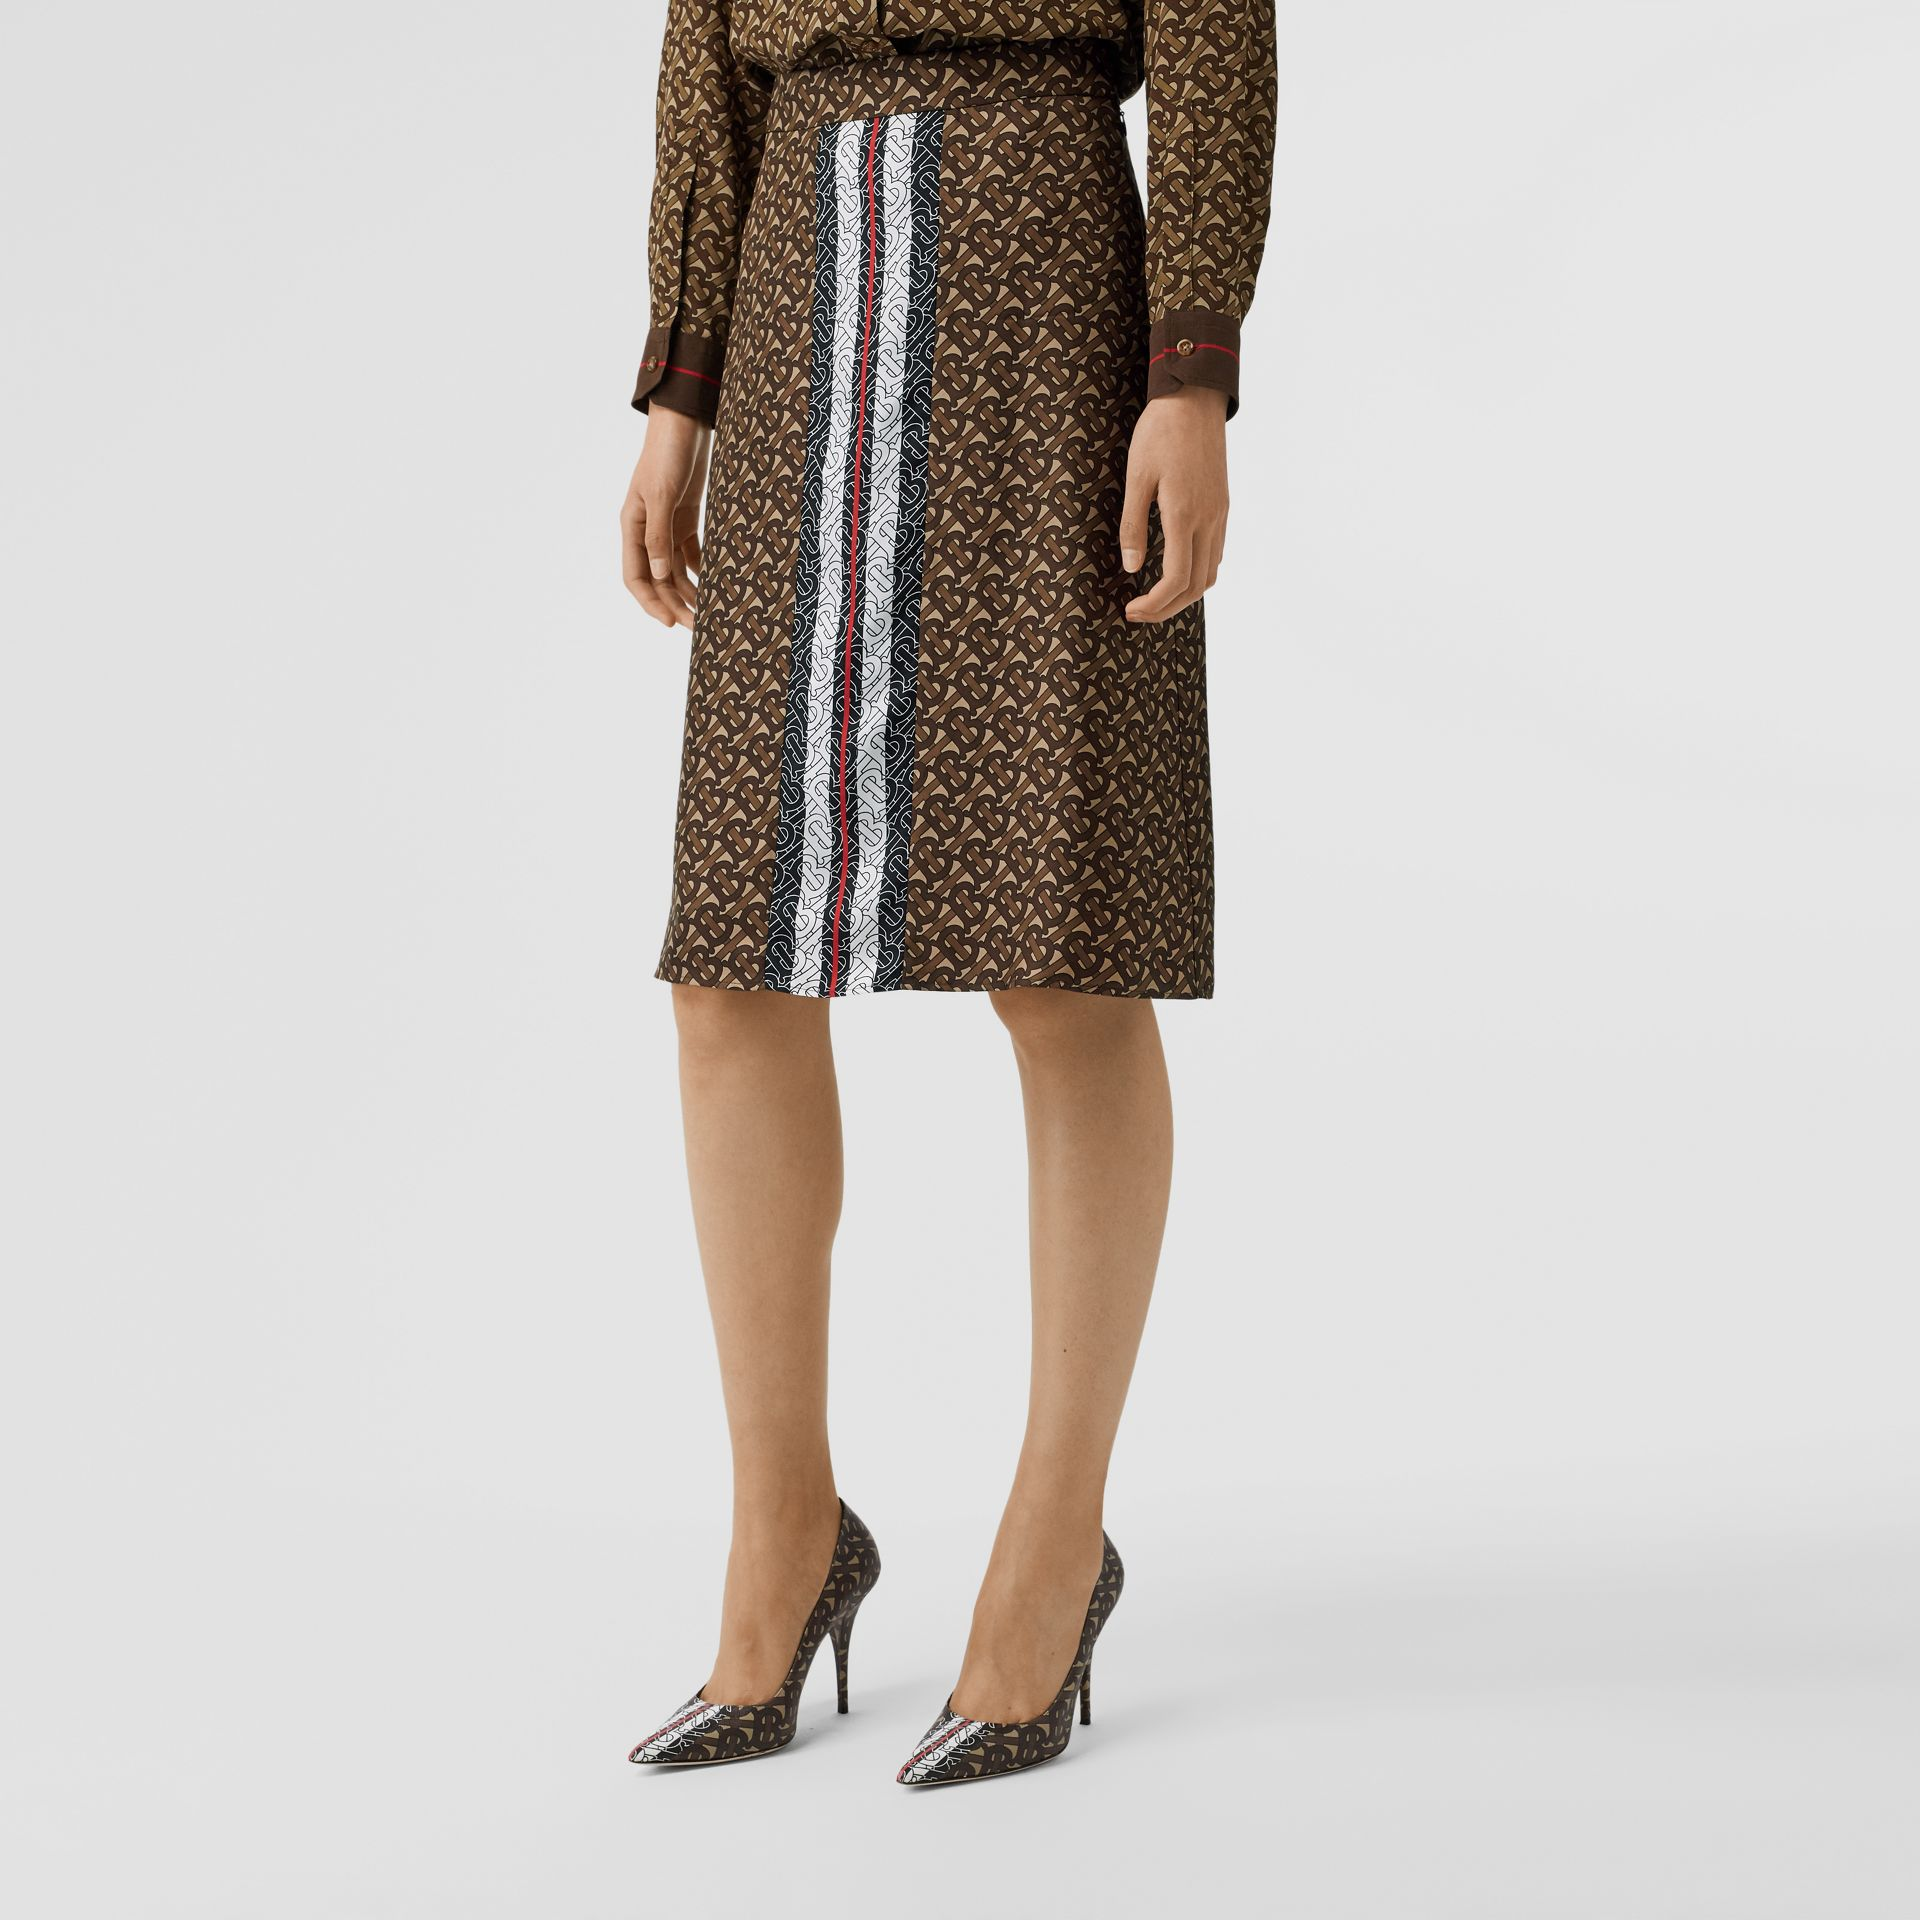 Monogram Stripe Print Silk Skirt in Bridle Brown - Women | Burberry United Kingdom - gallery image 4